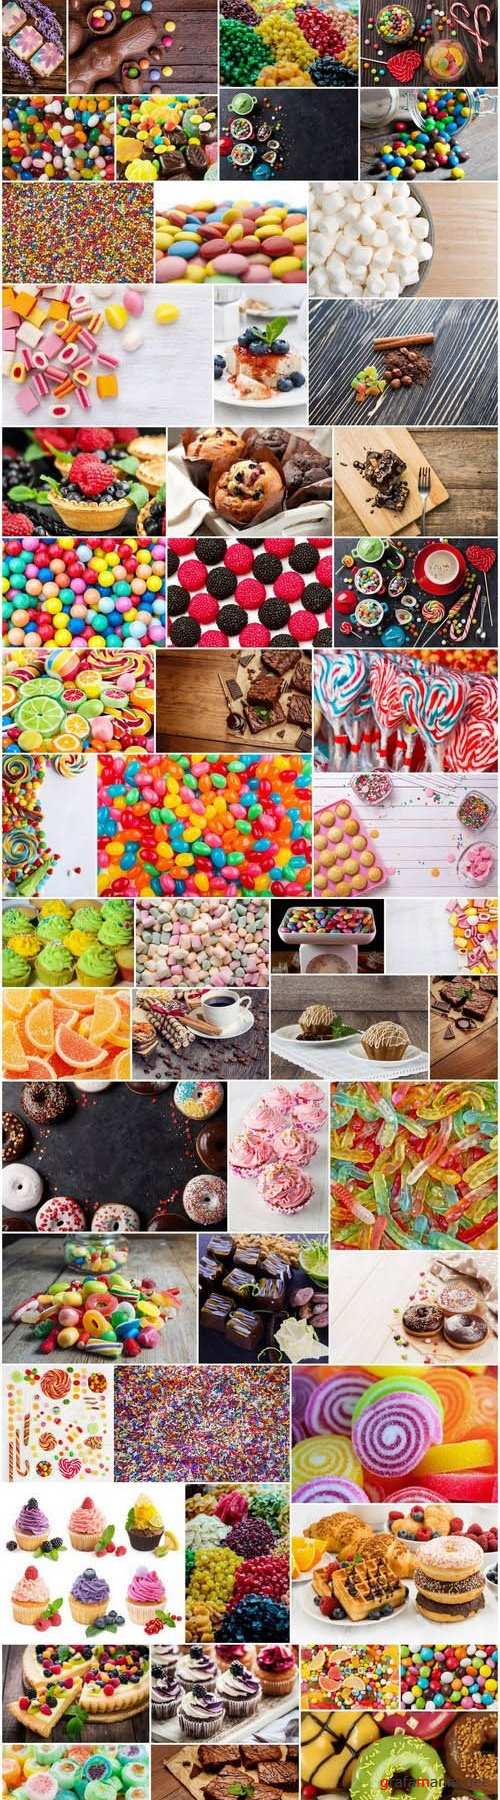 World of candies and sweets - 53xUHQ JPEG